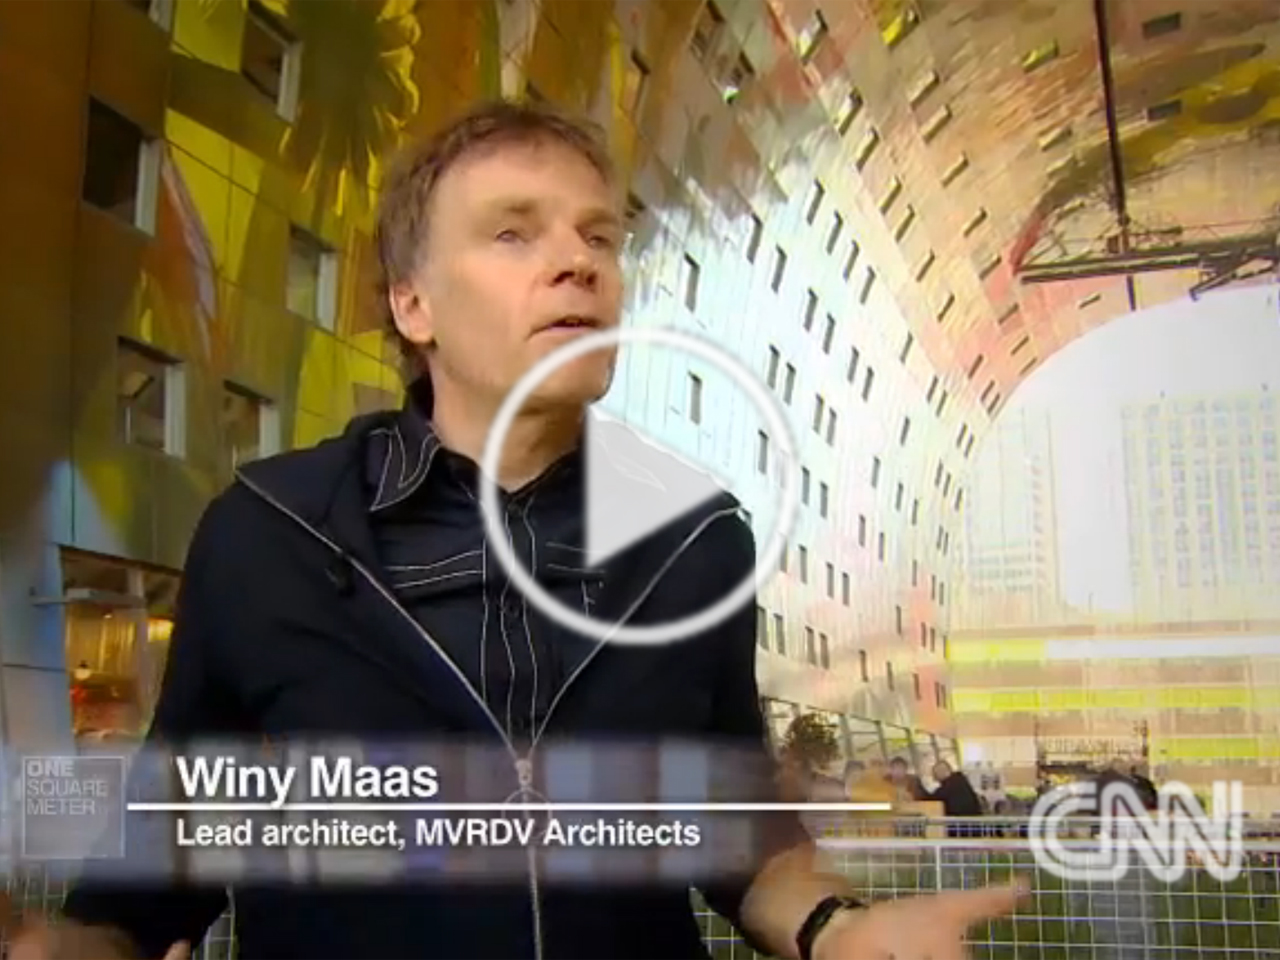 Video: Markthal and Winy Maas featured on CNN's One Square Metre property show